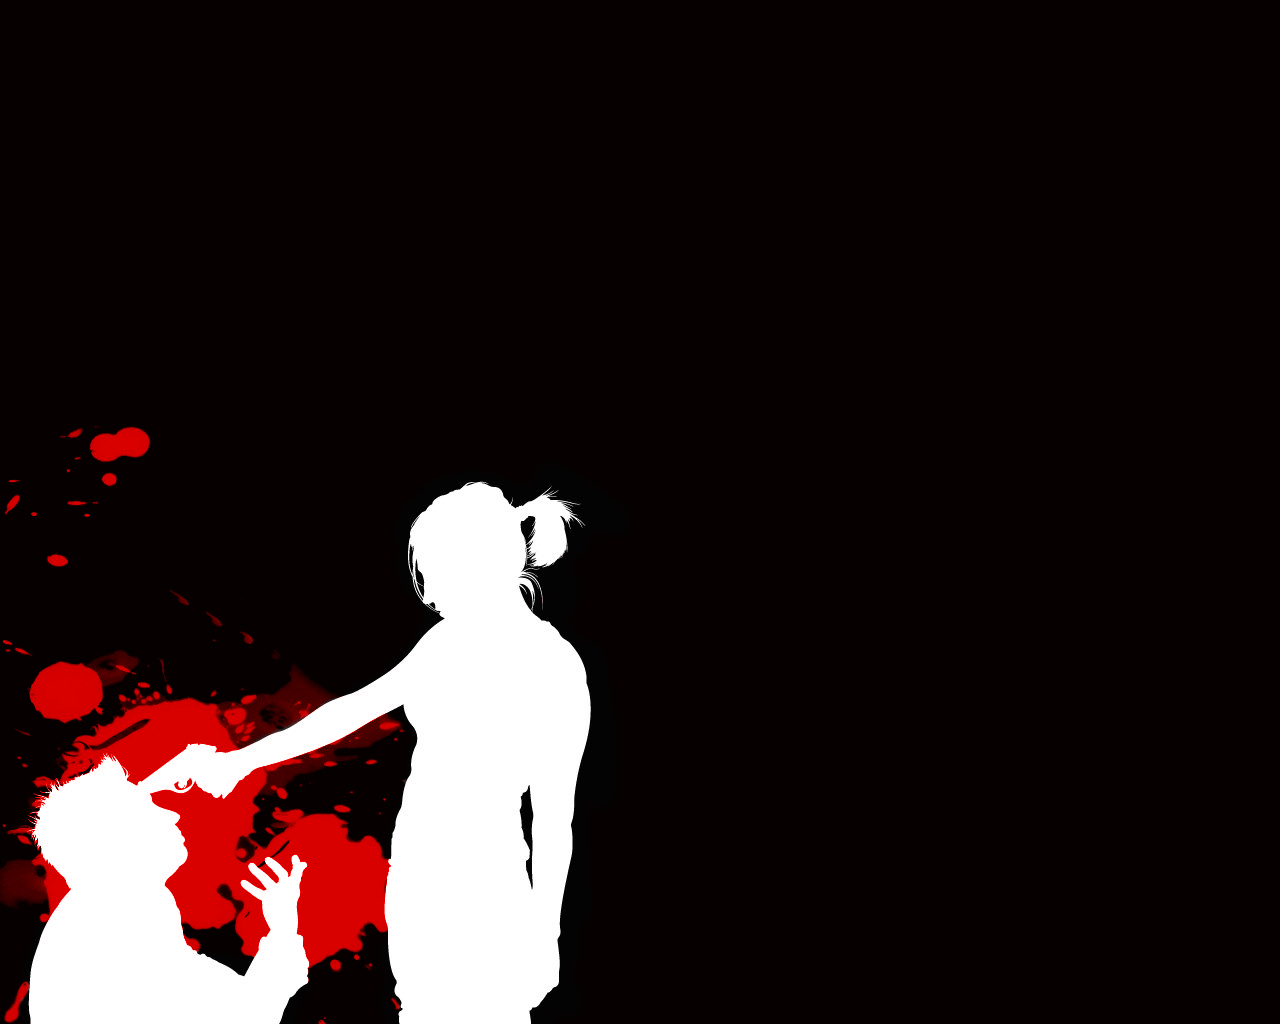 Guns blood silhouette couple HD Wallpaper